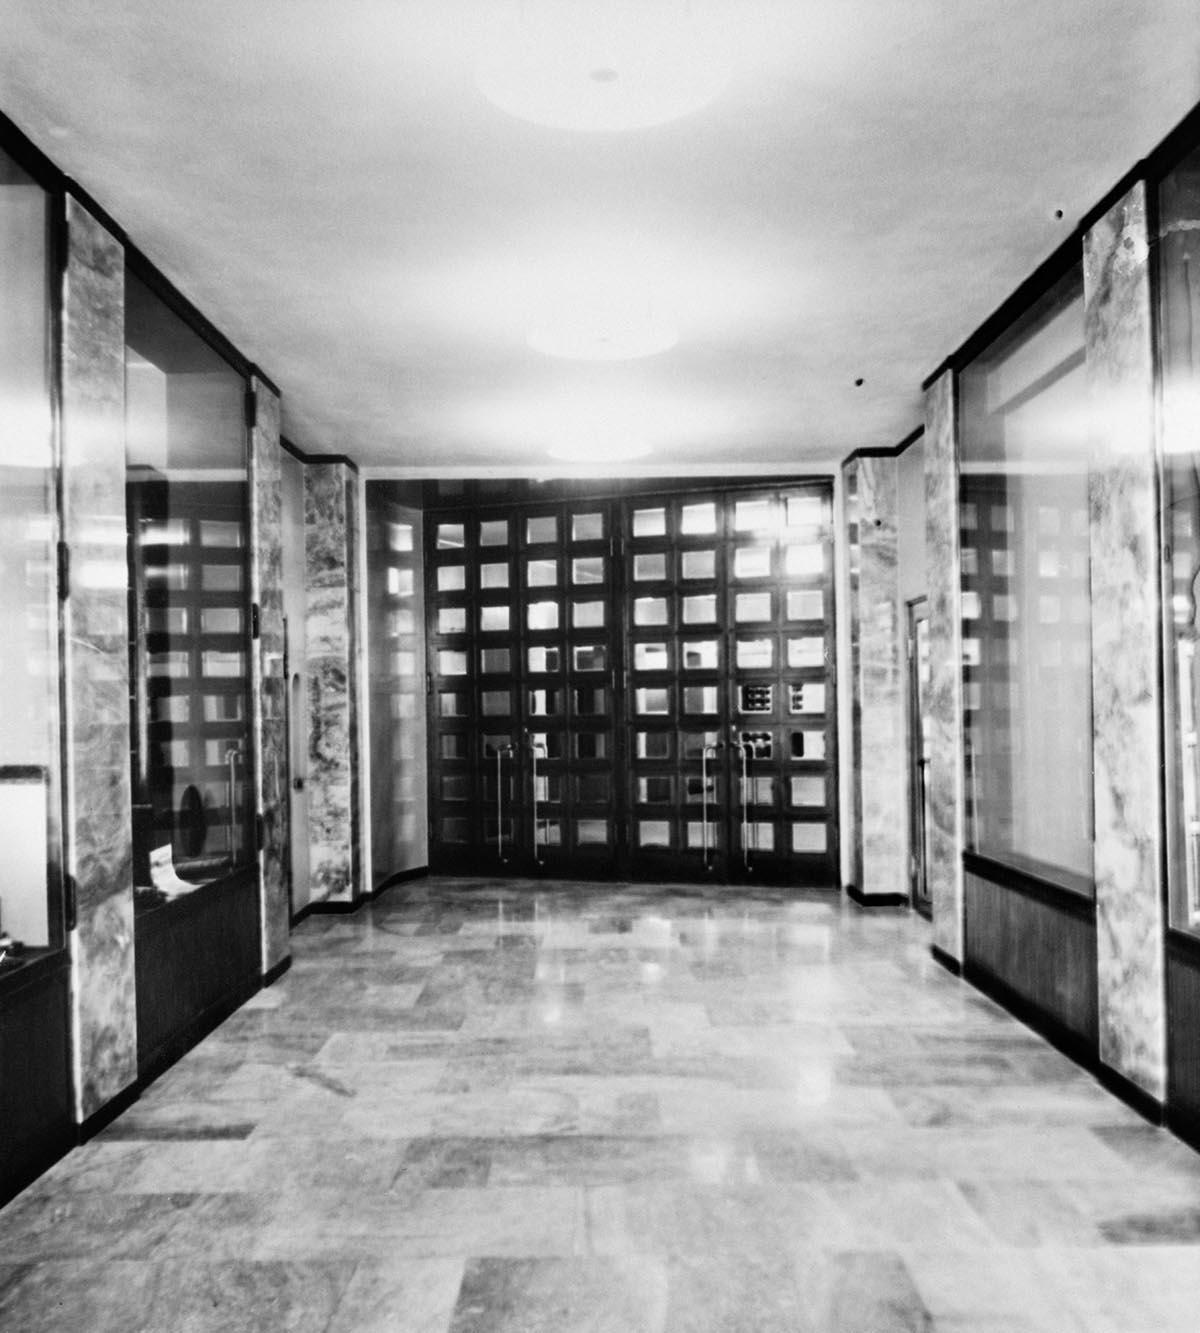 Hallway of the R building